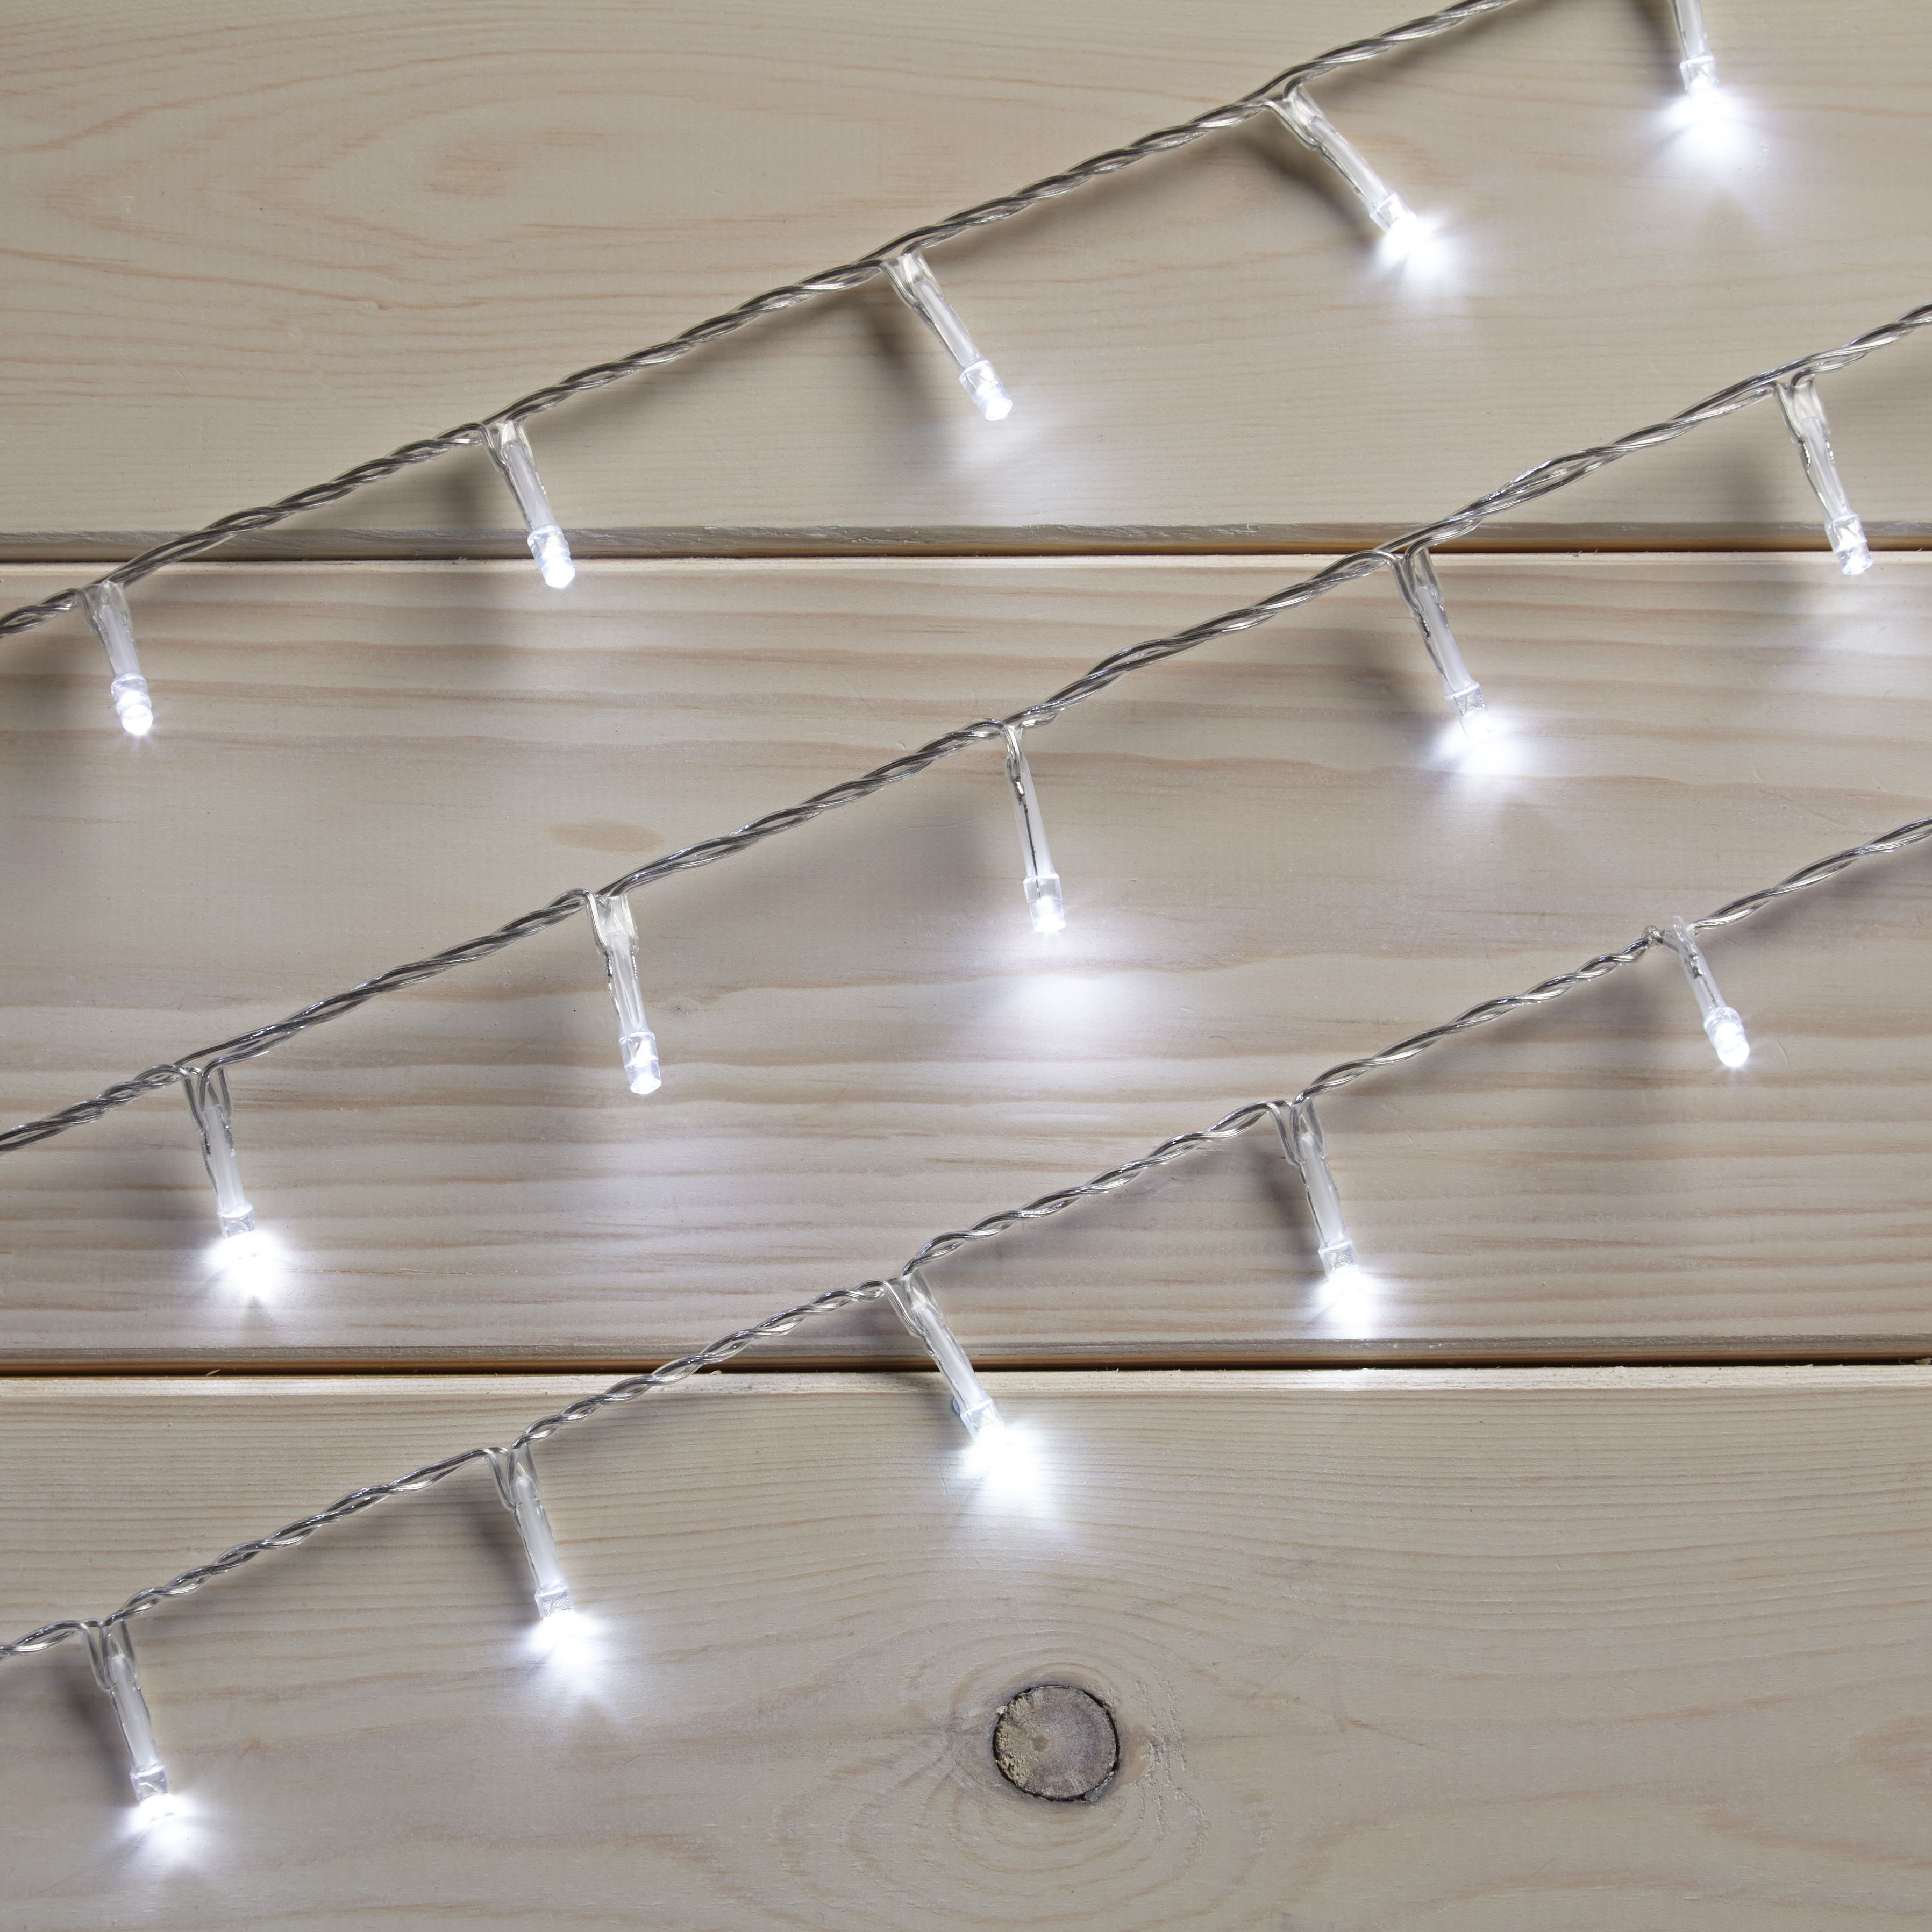 Led String Lights Diy : 40 White LED String Lights Departments DIY at B&Q